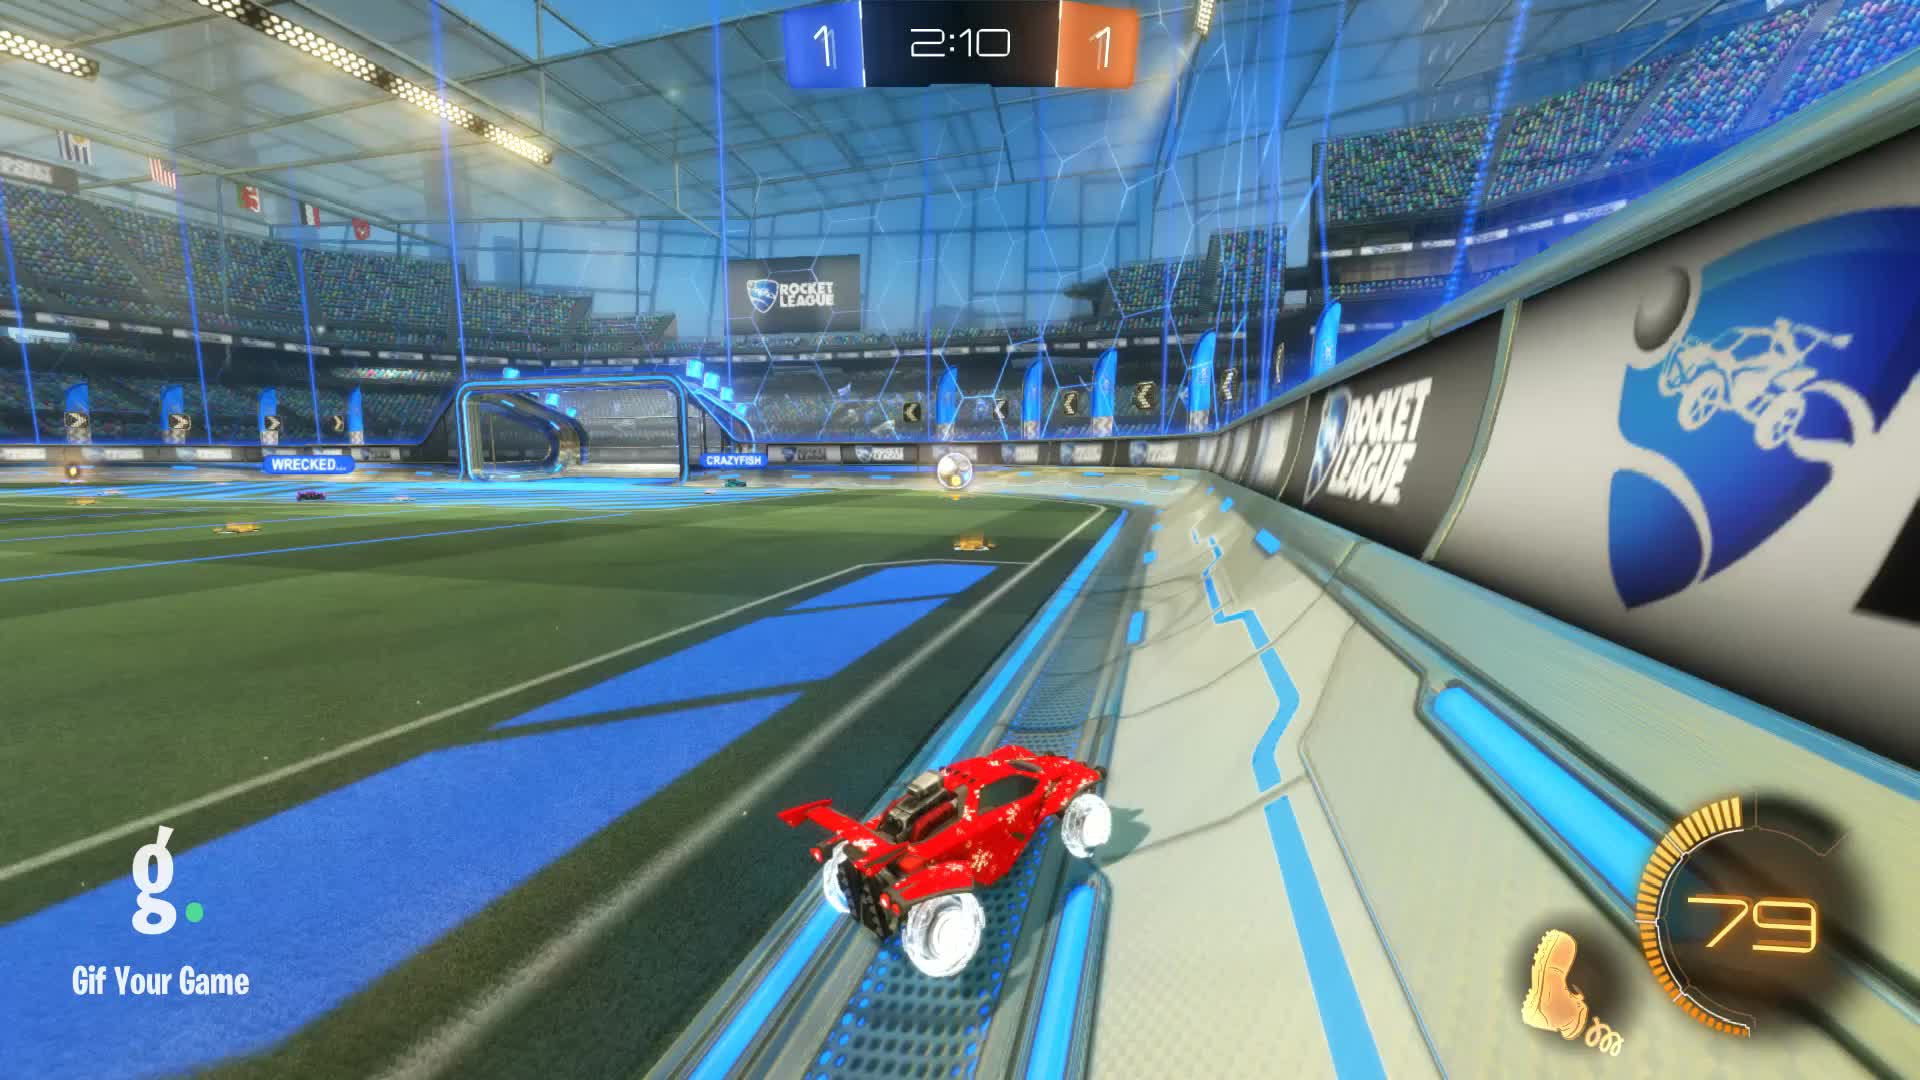 Assist, Gif Your Game, GifYourGame, Rocket League, RocketLeague, xaveir, Assist 1: xaveir GIFs